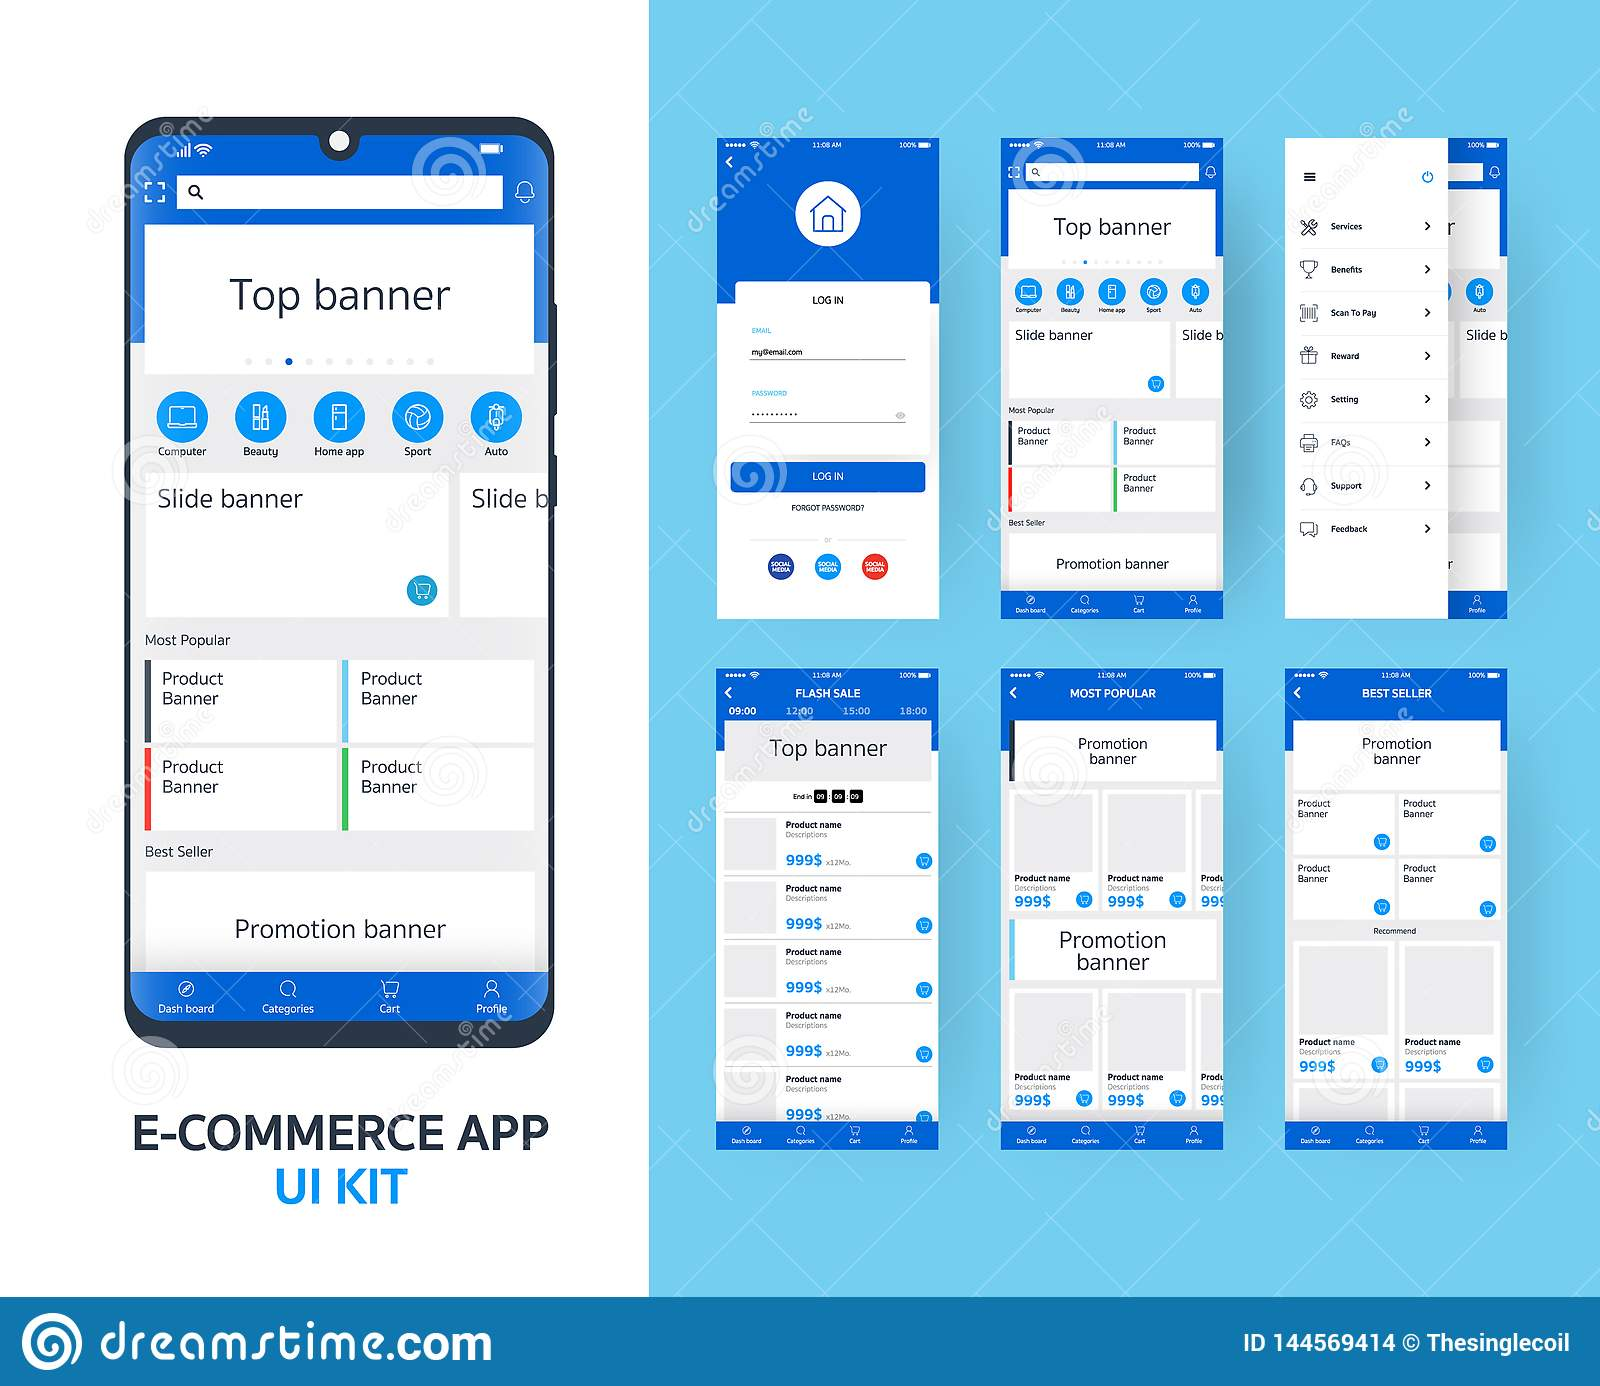 Online e-commerce app UI kit for responsive mobile app with different GUI layout including Login, main page, categories ,